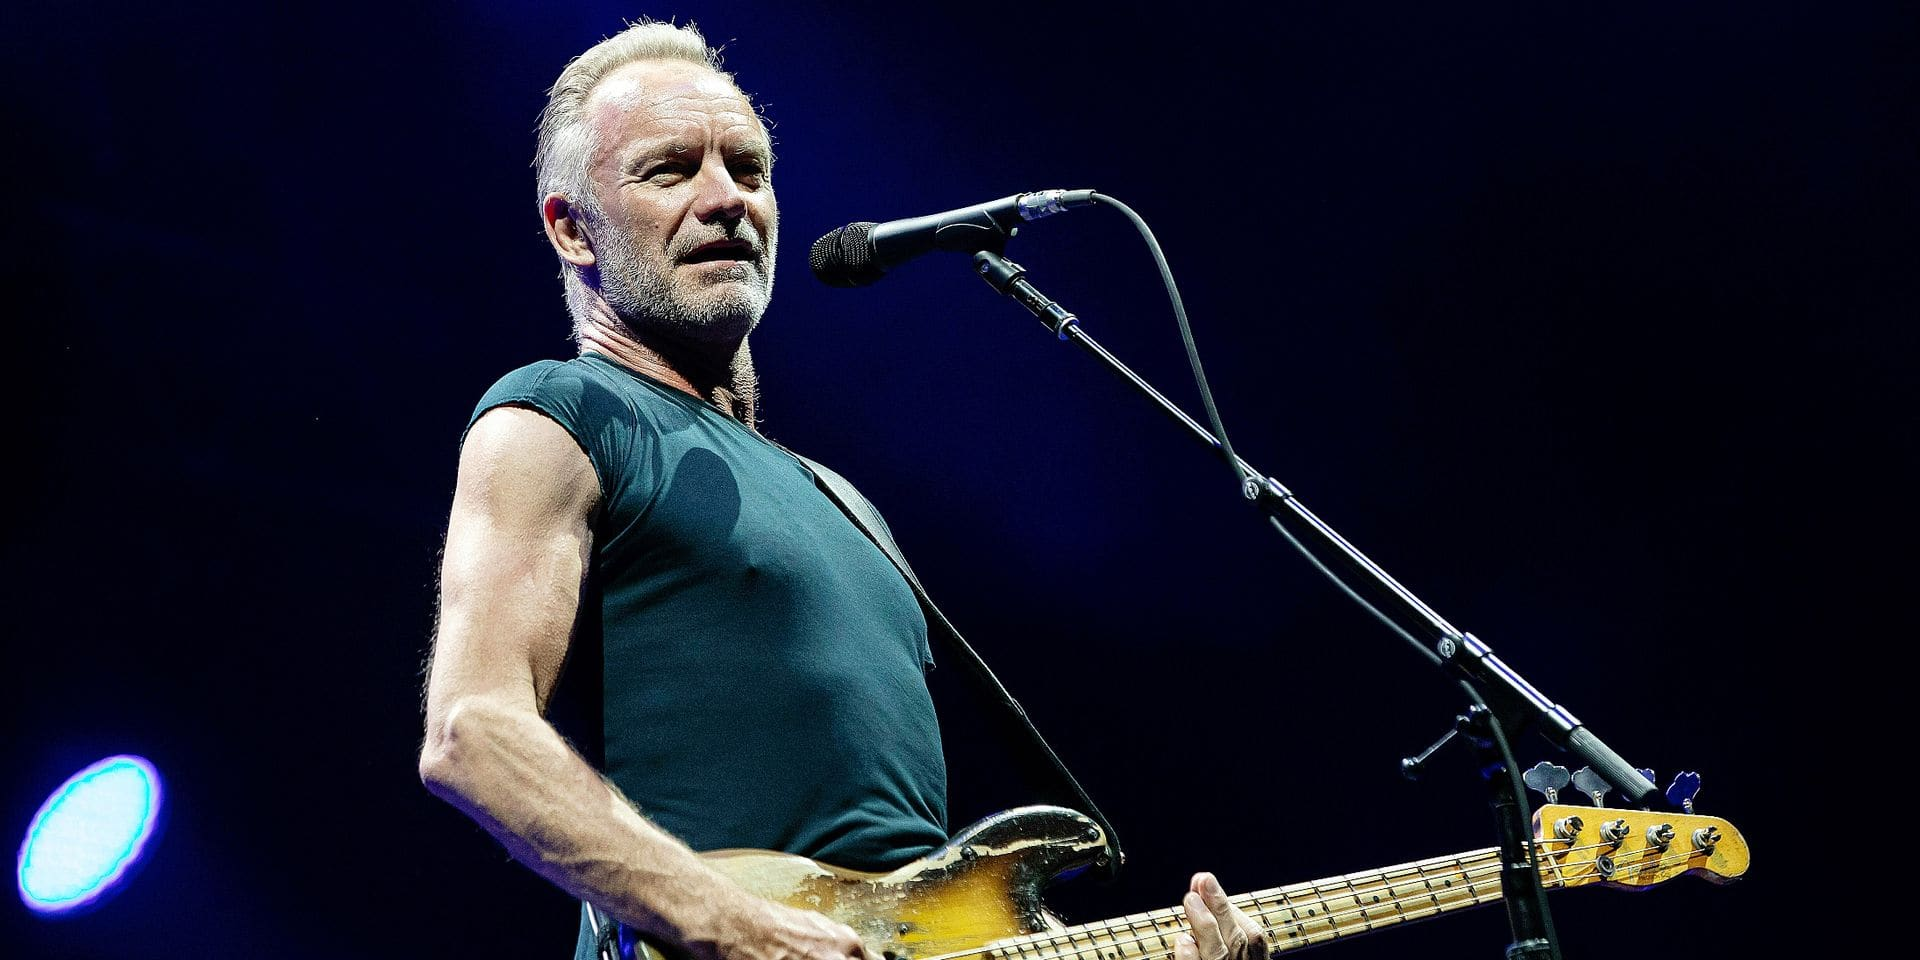 British musician Sting performs during his concert in Papp Laszlo Budapest Sports Arena in Budapest, Hungary, Tuesday July 2, 2019. (Balazs Mohai/MTI via AP)